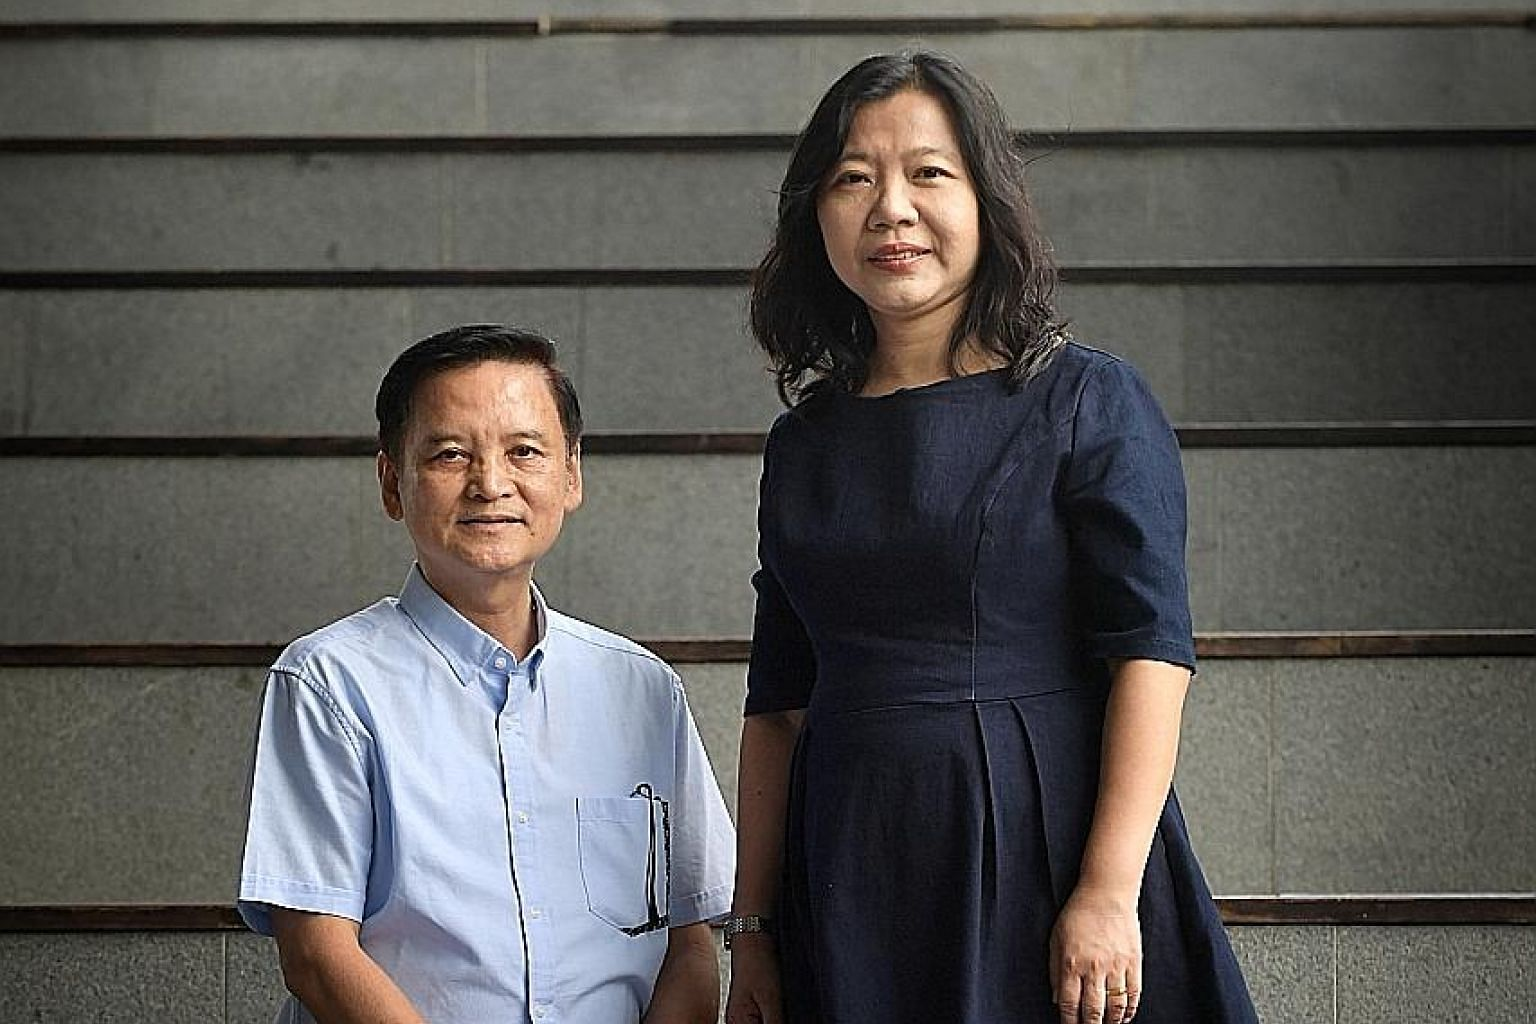 Mr Kelvin Quak, 60, with his wife, Madam Khoo Lay Hwa, 51. Mr Quak has remained free of drugs - and crime - for close to three decades, and is committed to helping others steer clear of them as a social worker with the Methodist Missions Society. ST